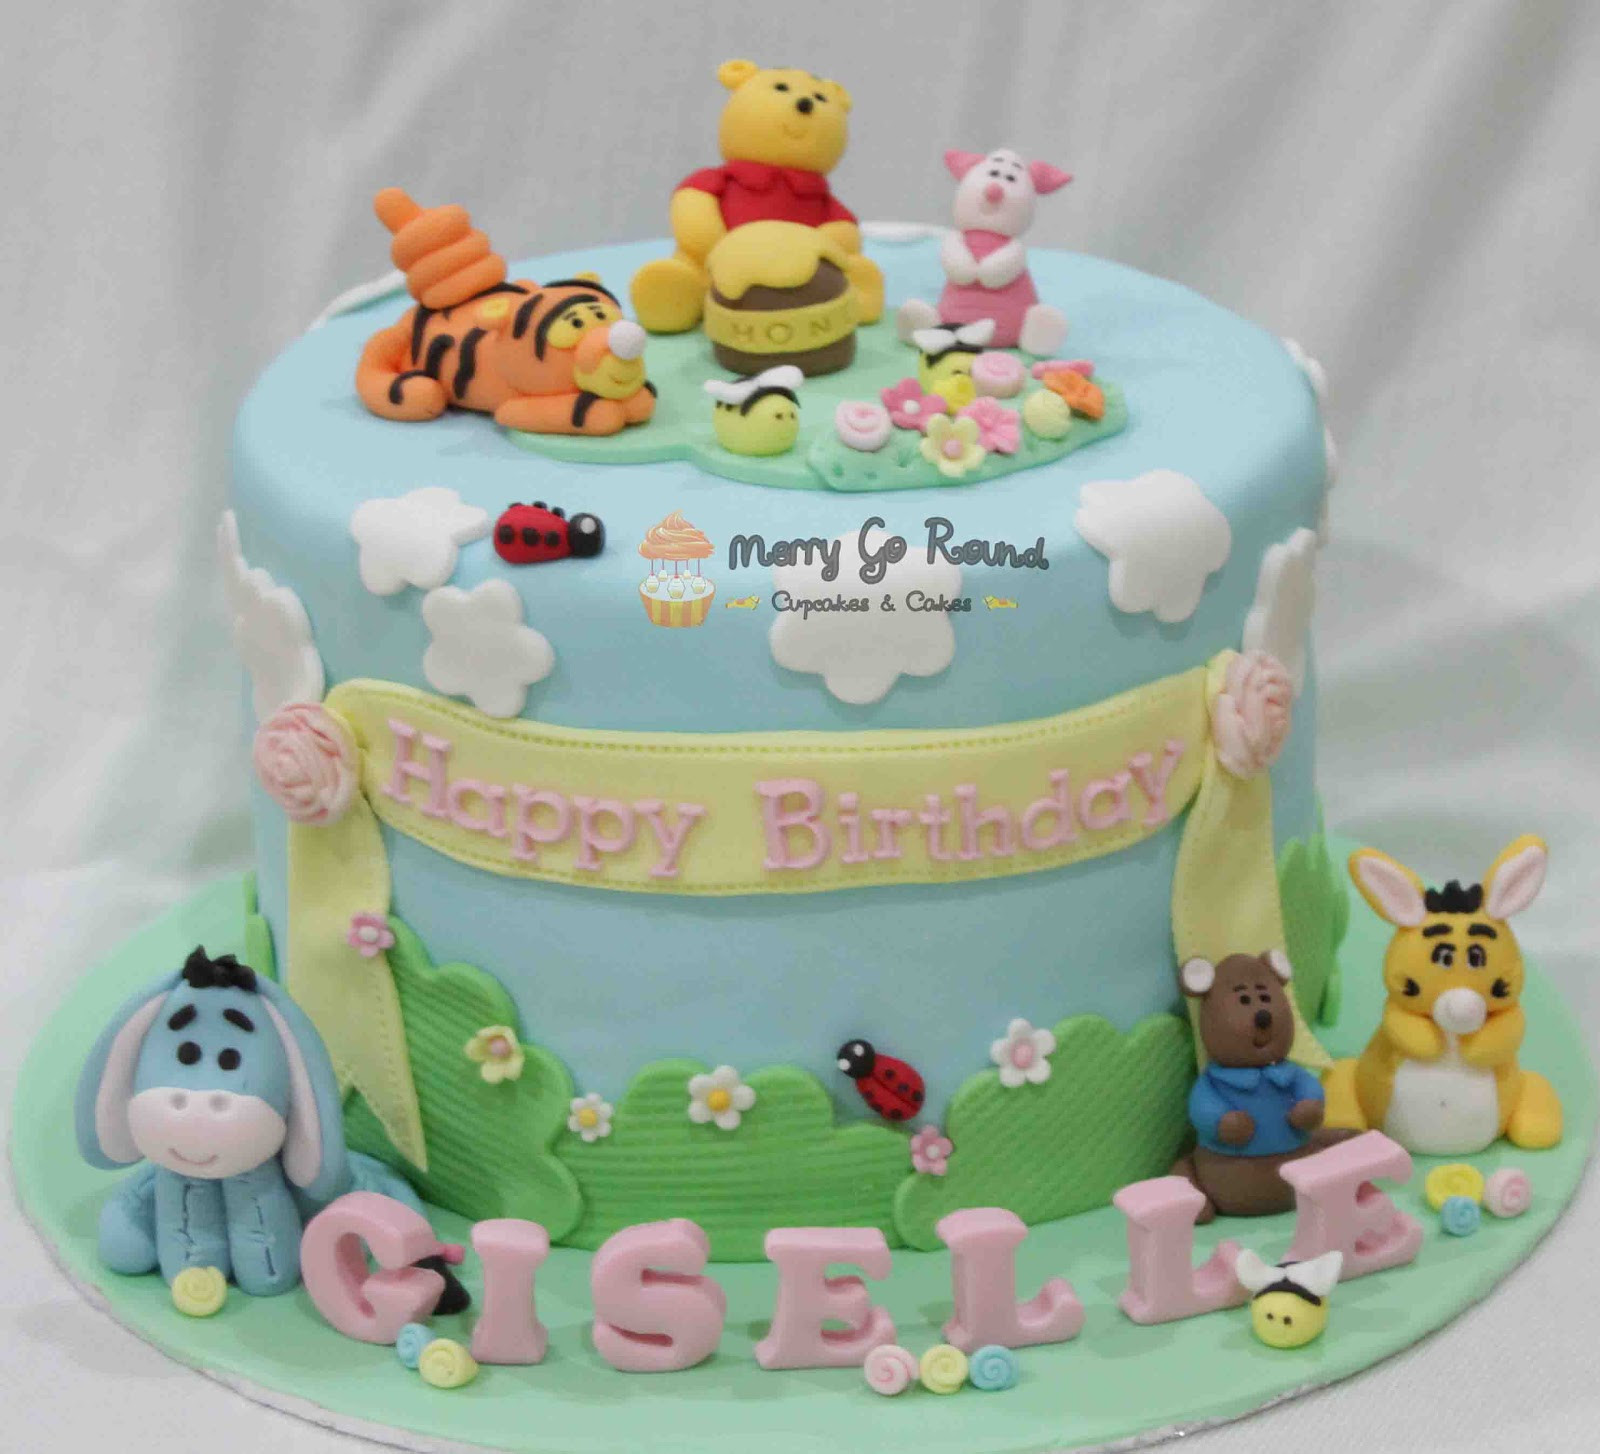 Best ideas about Winnie The Pooh Birthday Cake . Save or Pin Merry Go Round Cupcakes & Cakes Winnie the Pooh Now.